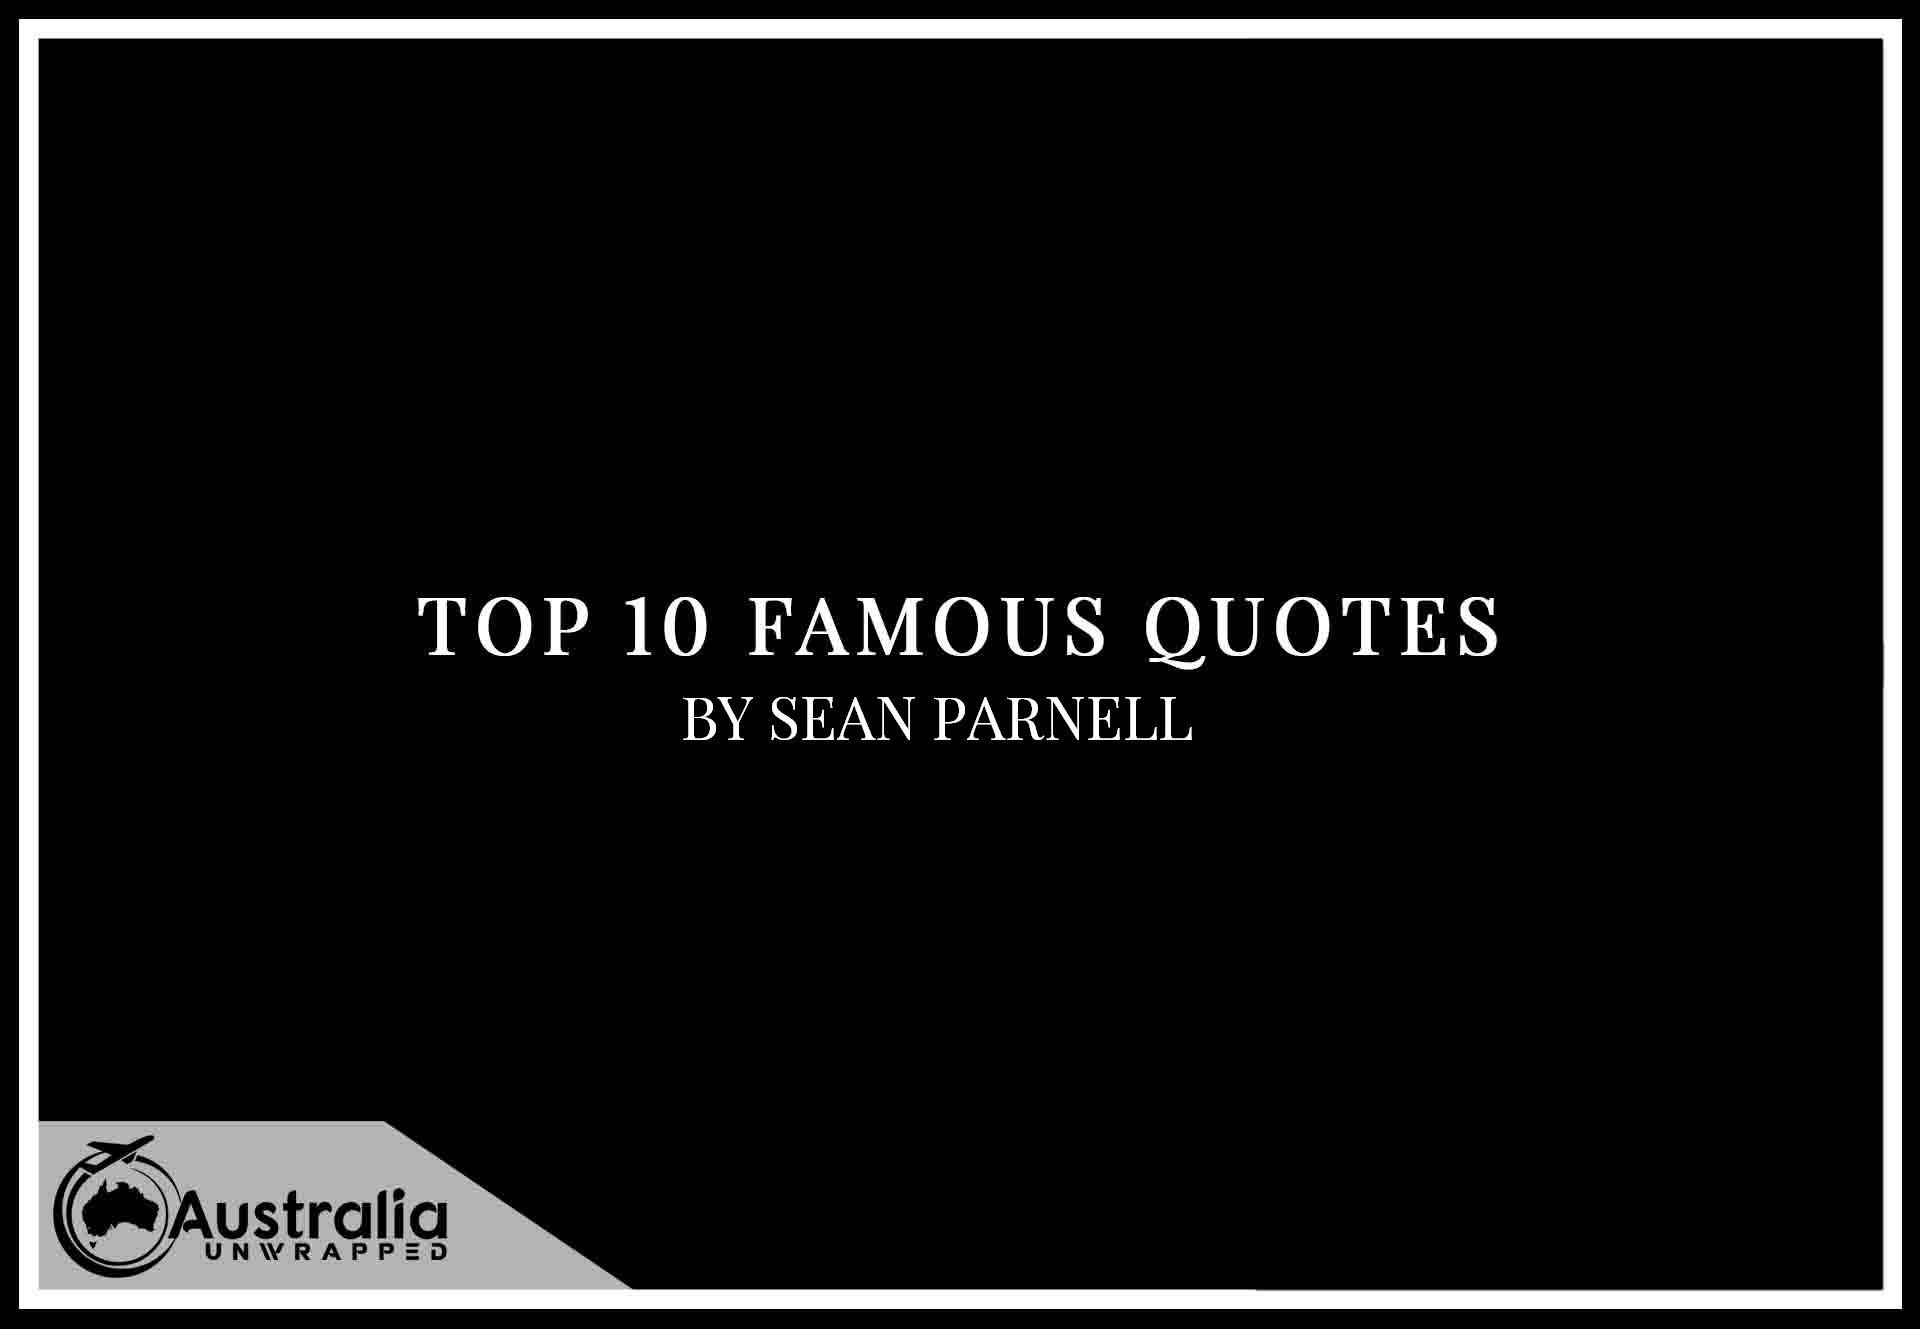 Top 10 Famous Quotes by Author Sean Parnell